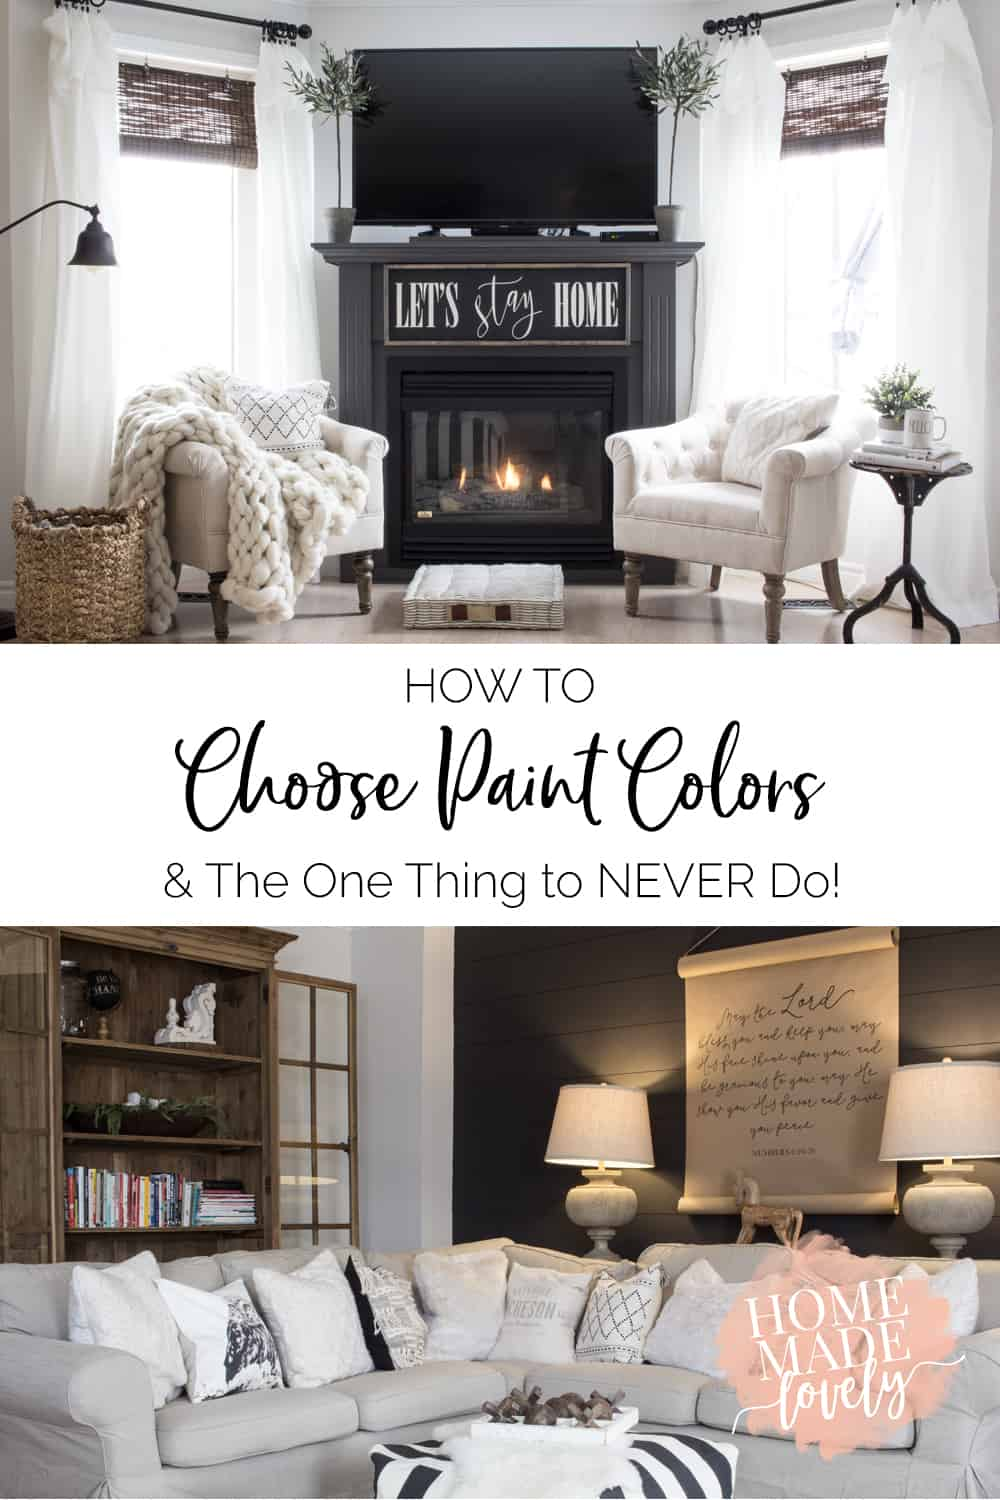 how to choose paint colors pin graphic with fireplace and couch photos to illustrate colors